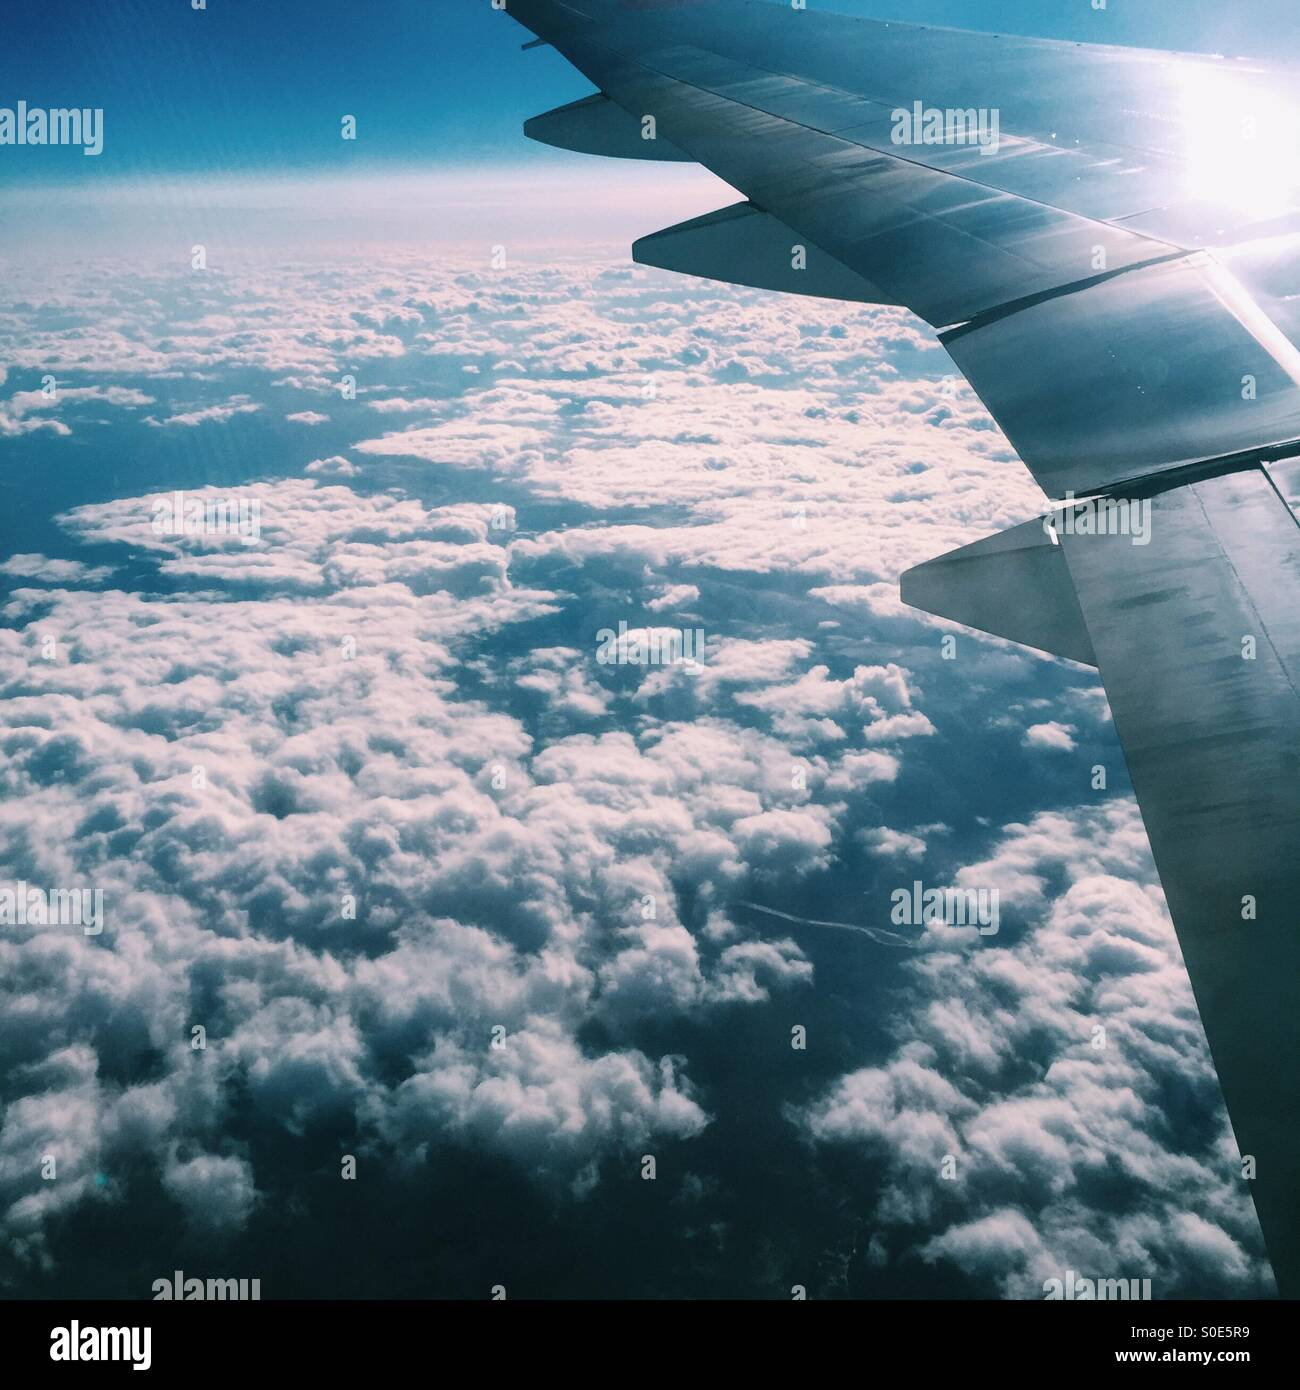 Aerial view of airplane wing and clouds as seen from window of airplane.Stock Photo